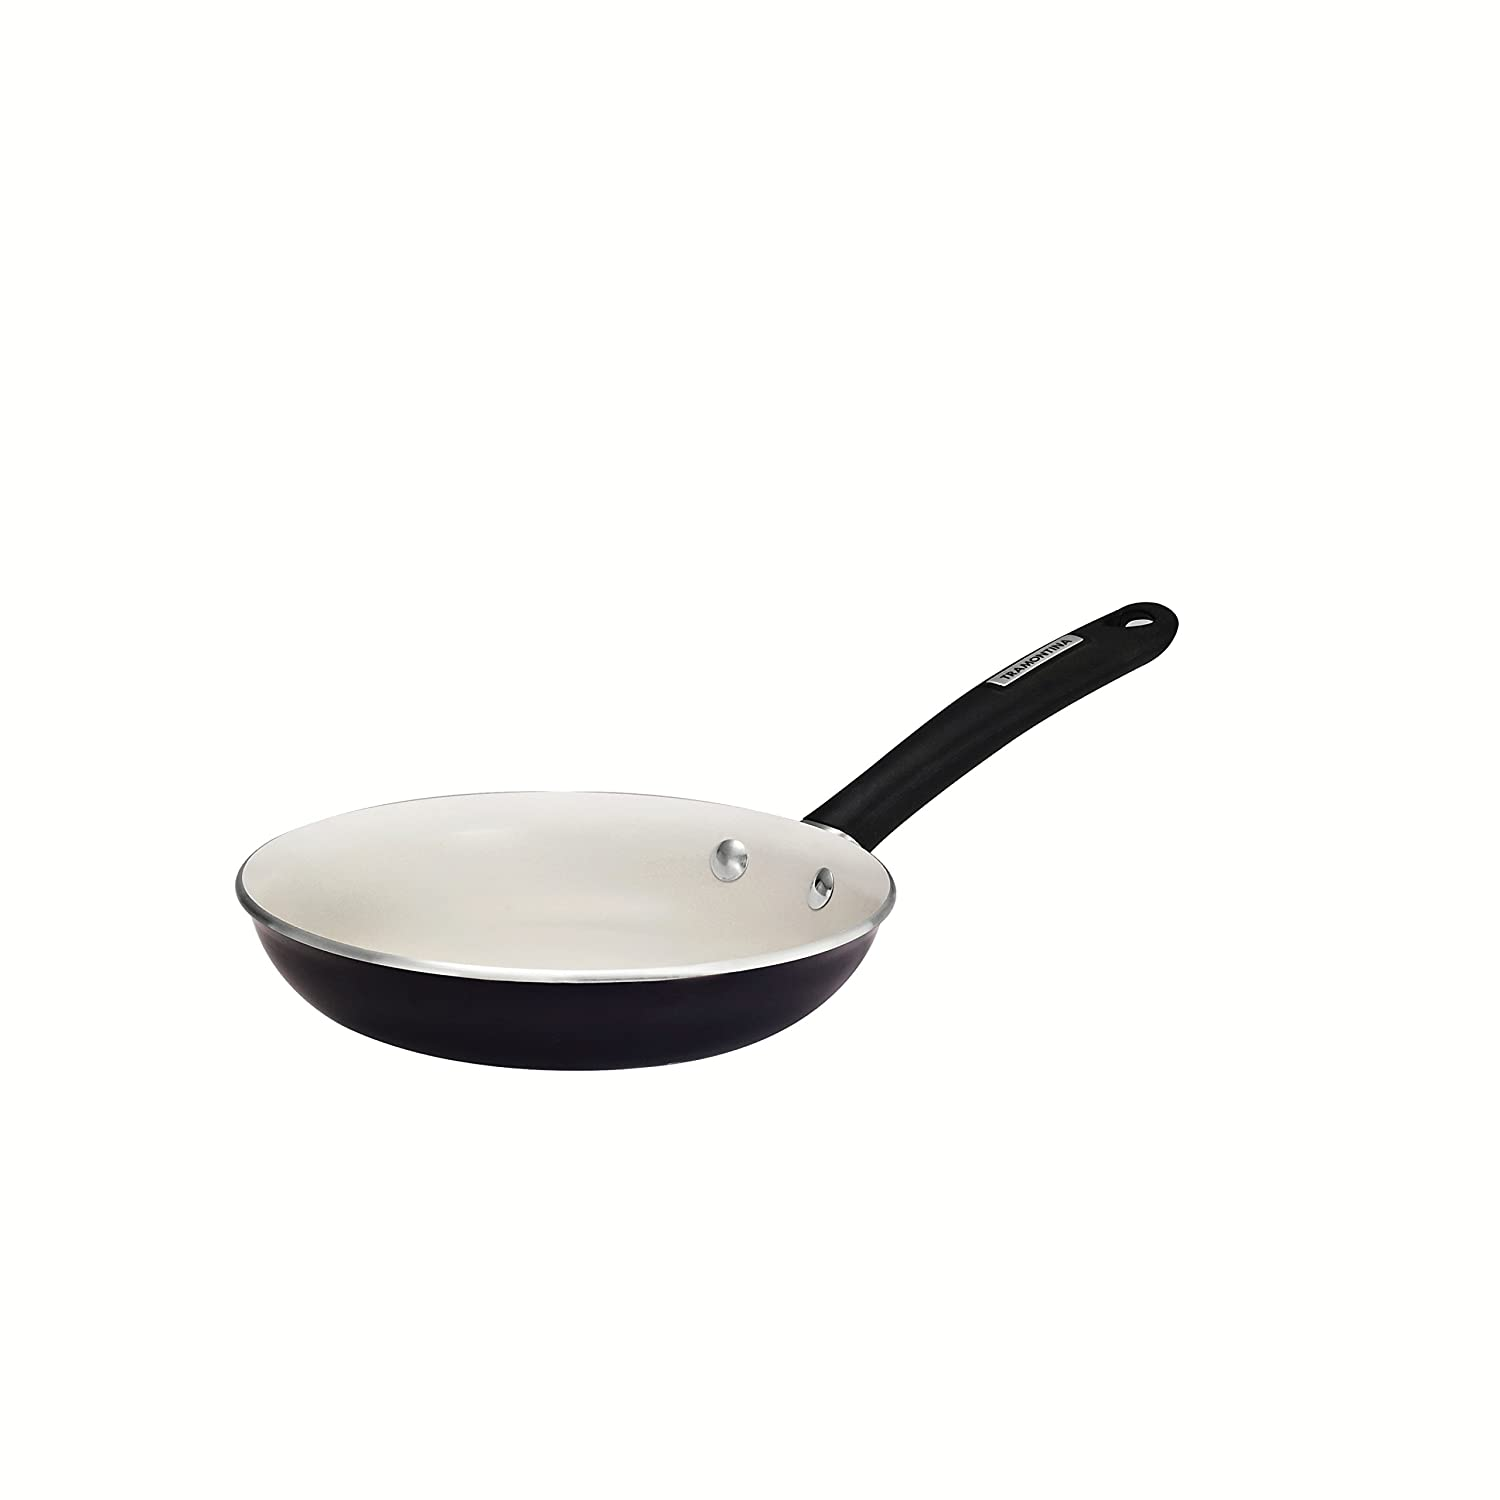 Amazon.com: Tramontina 80151/040DS Gourmet Porcelain Enamel Heavy-Gauge Aluminum Fry Pan, 8-Inch, Black Cherry: Skillets: Kitchen & Dining